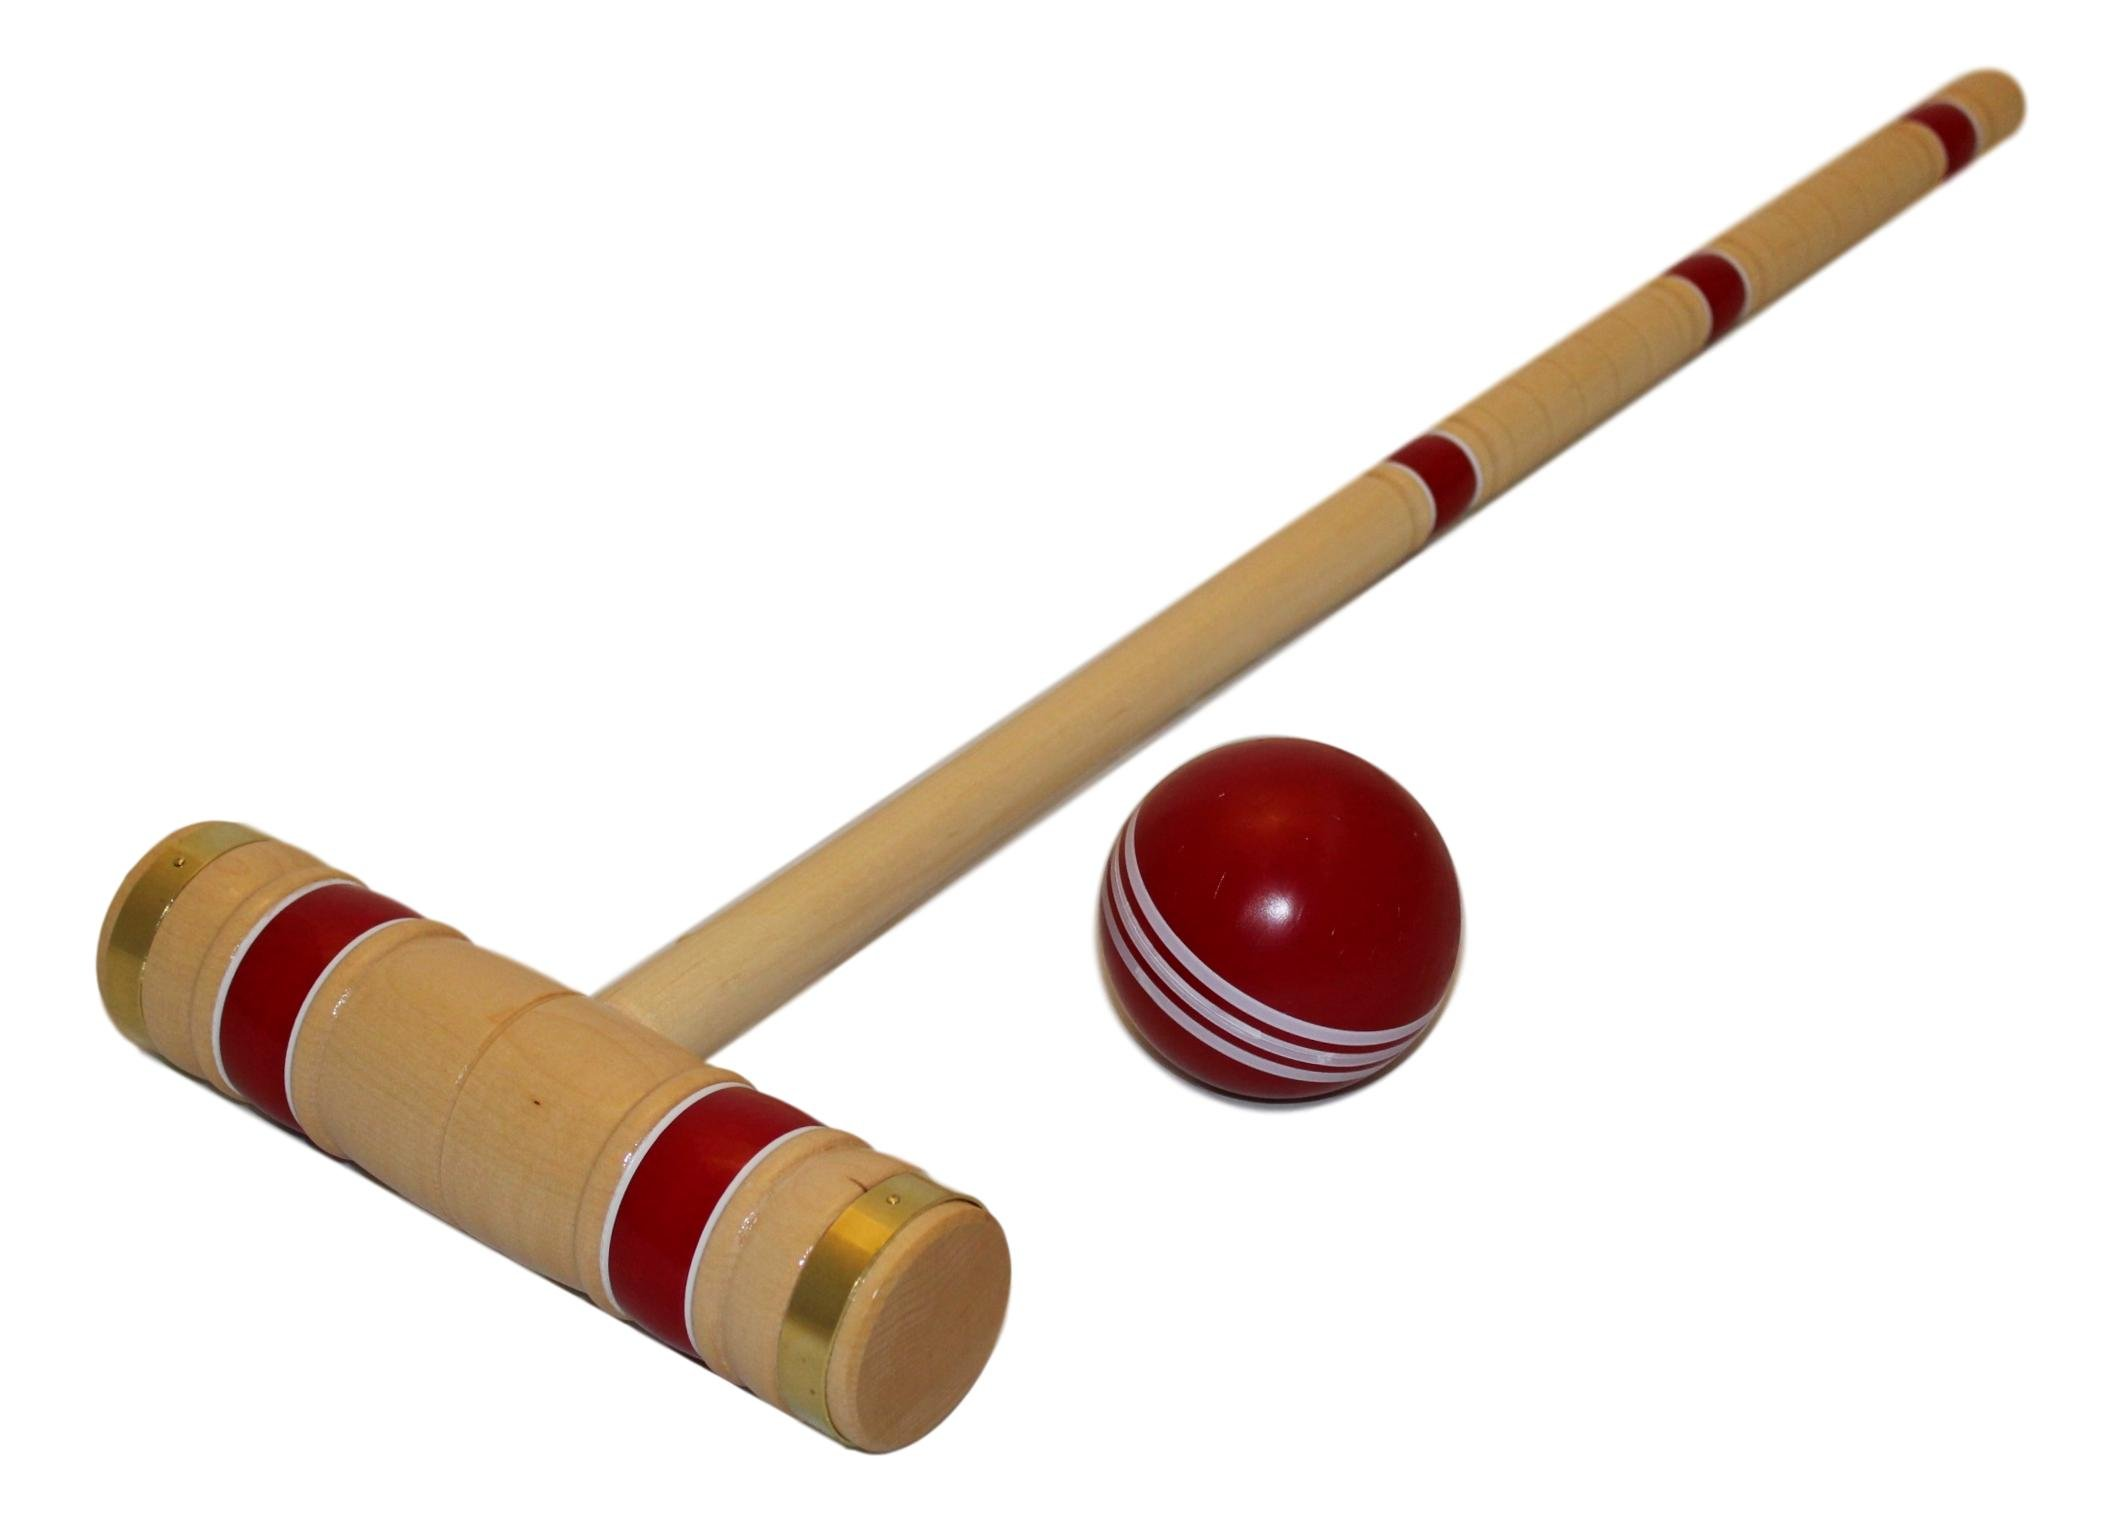 This Top Quality Croquet Set Helps Keep Your Organized Since It Comes With A Ready To Play Wooden Holder